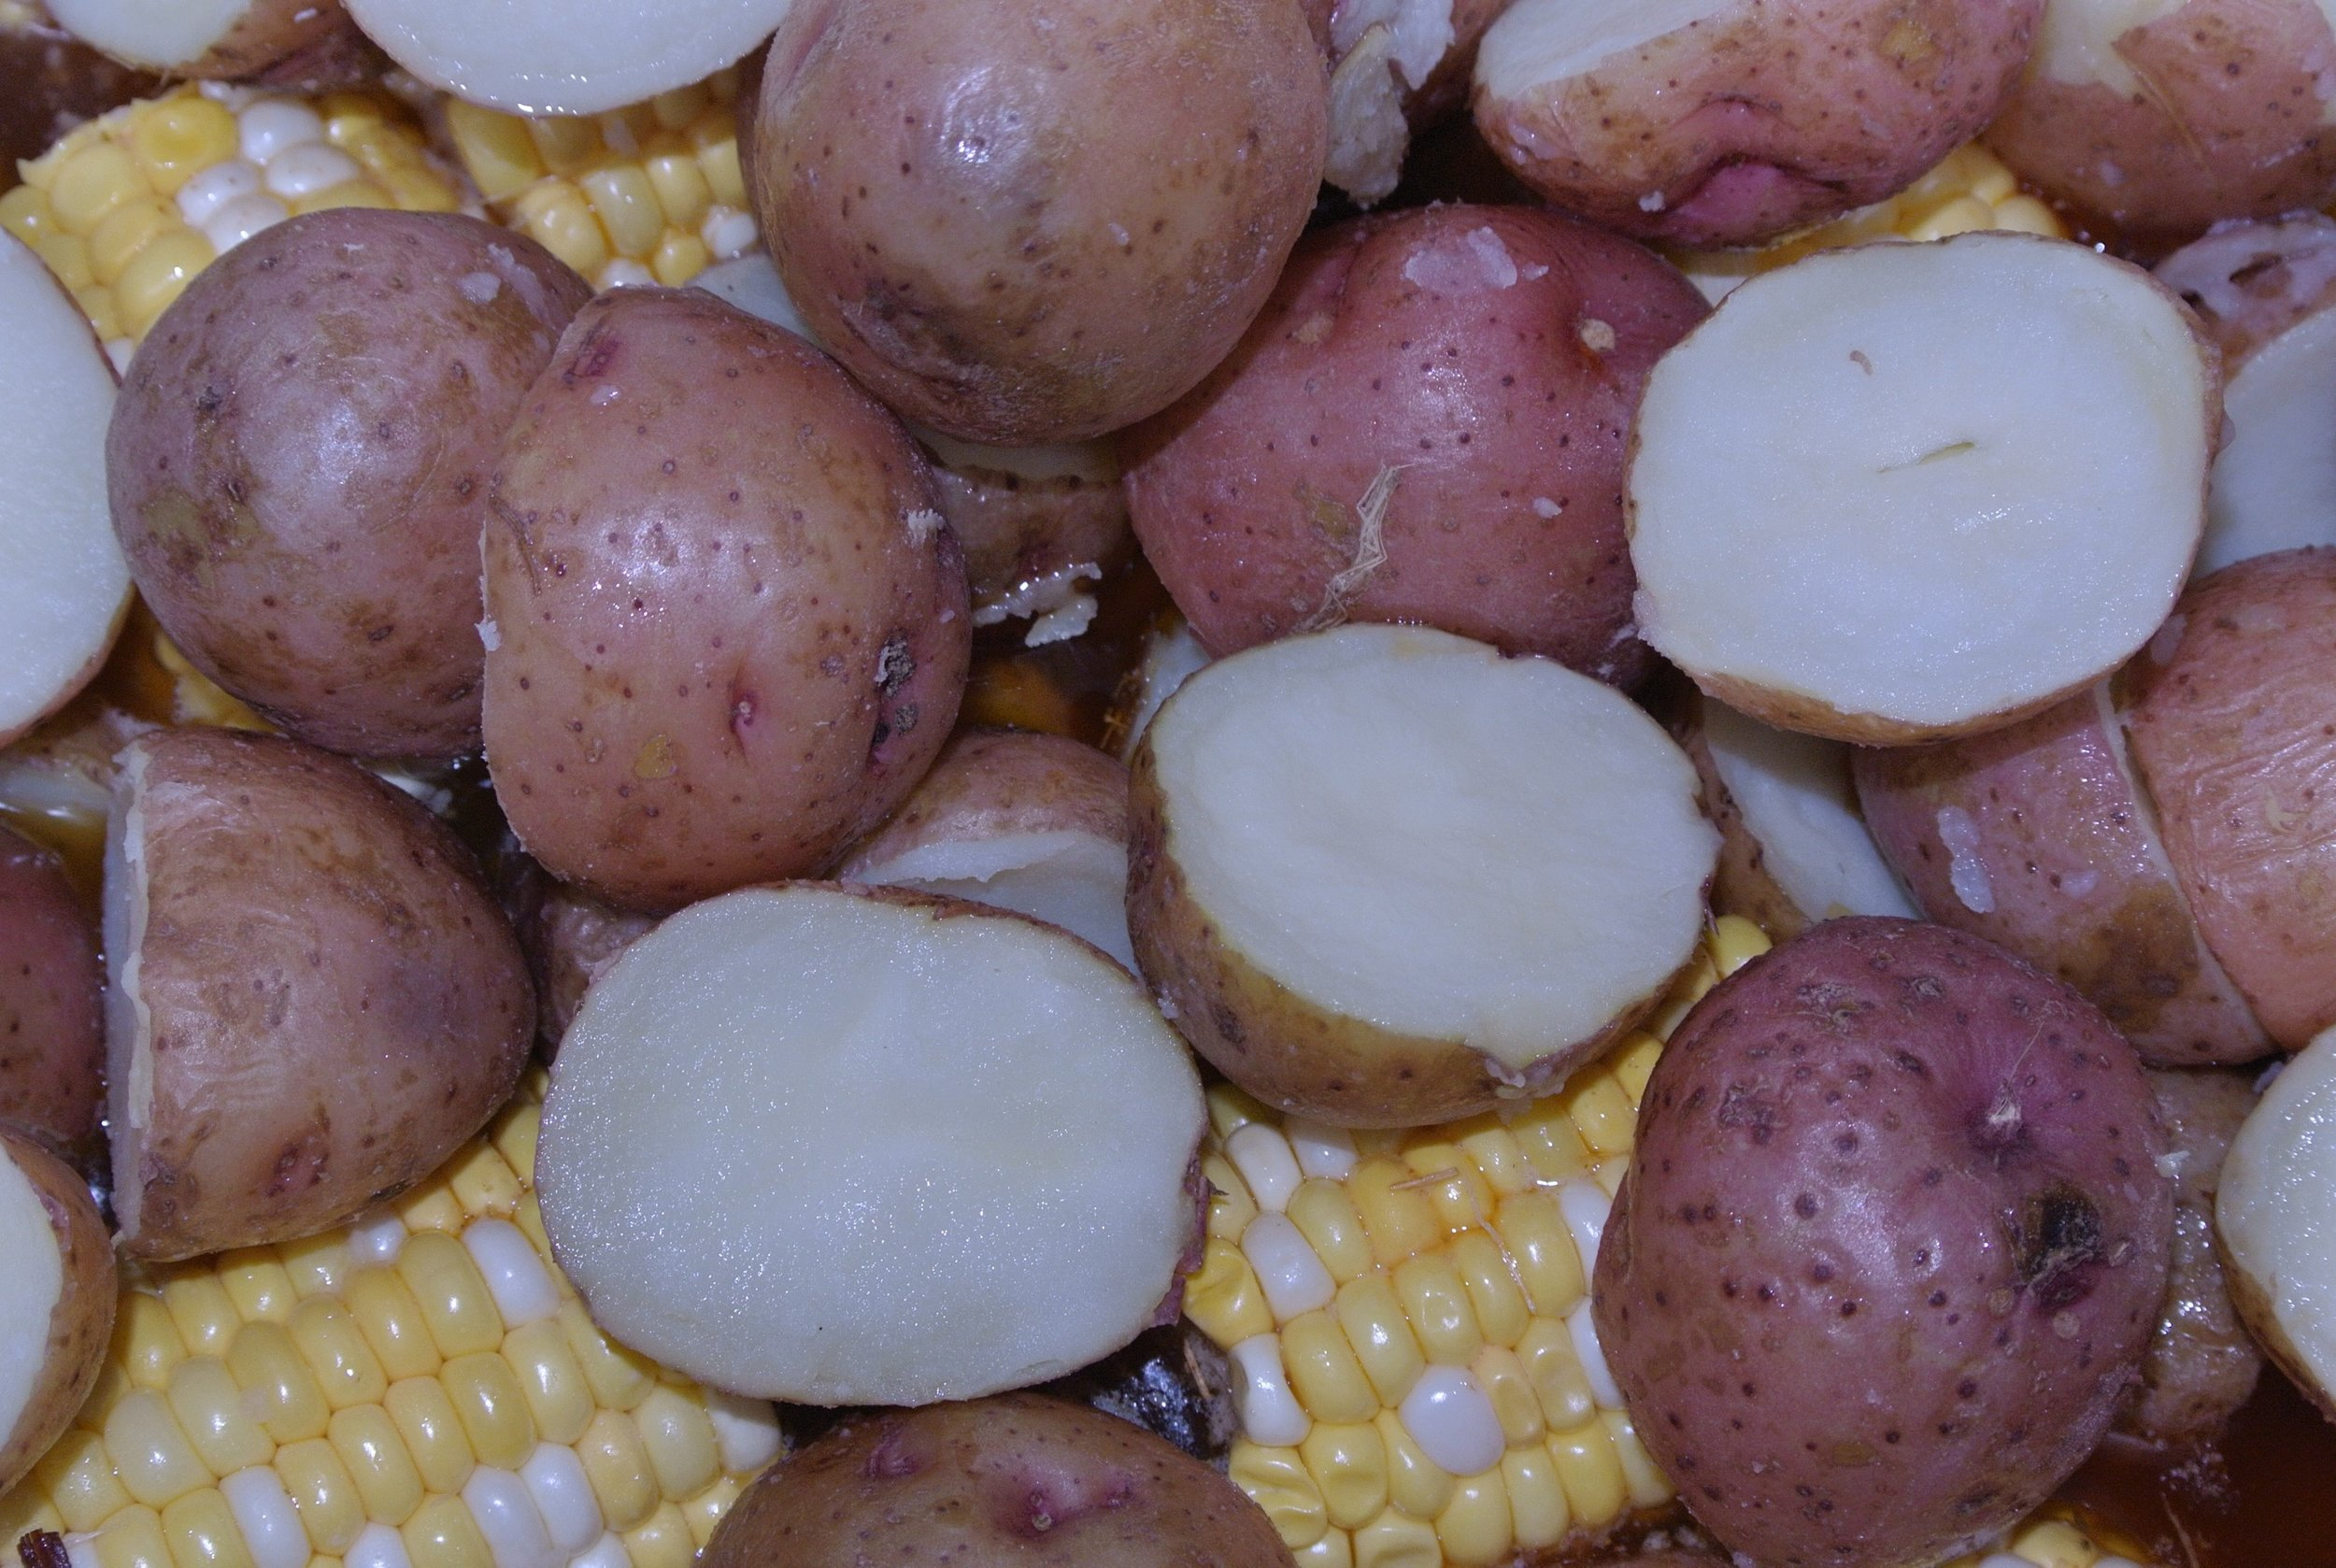 Salt Potatoes and Corn